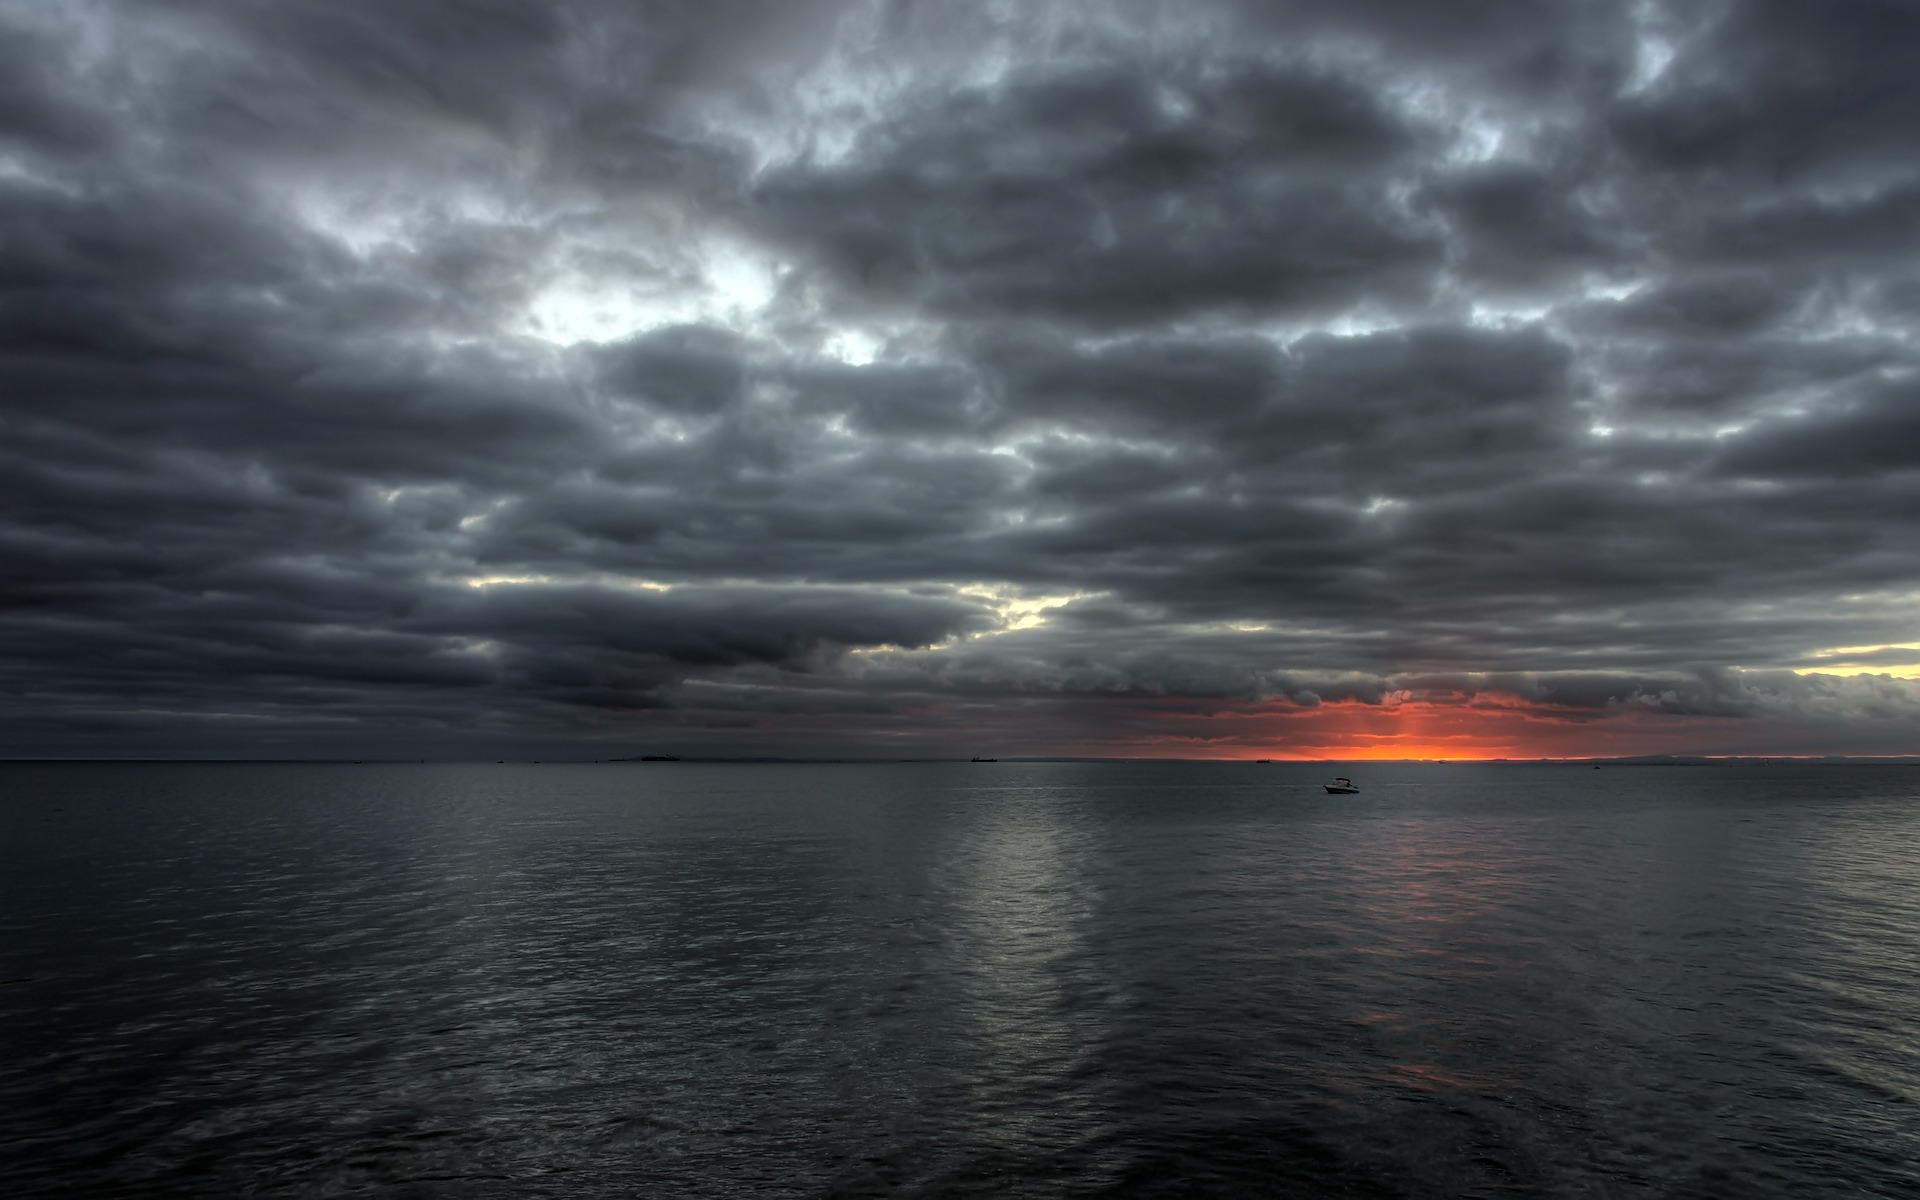 Find out Dark Evening Sea Waves wallpaper on